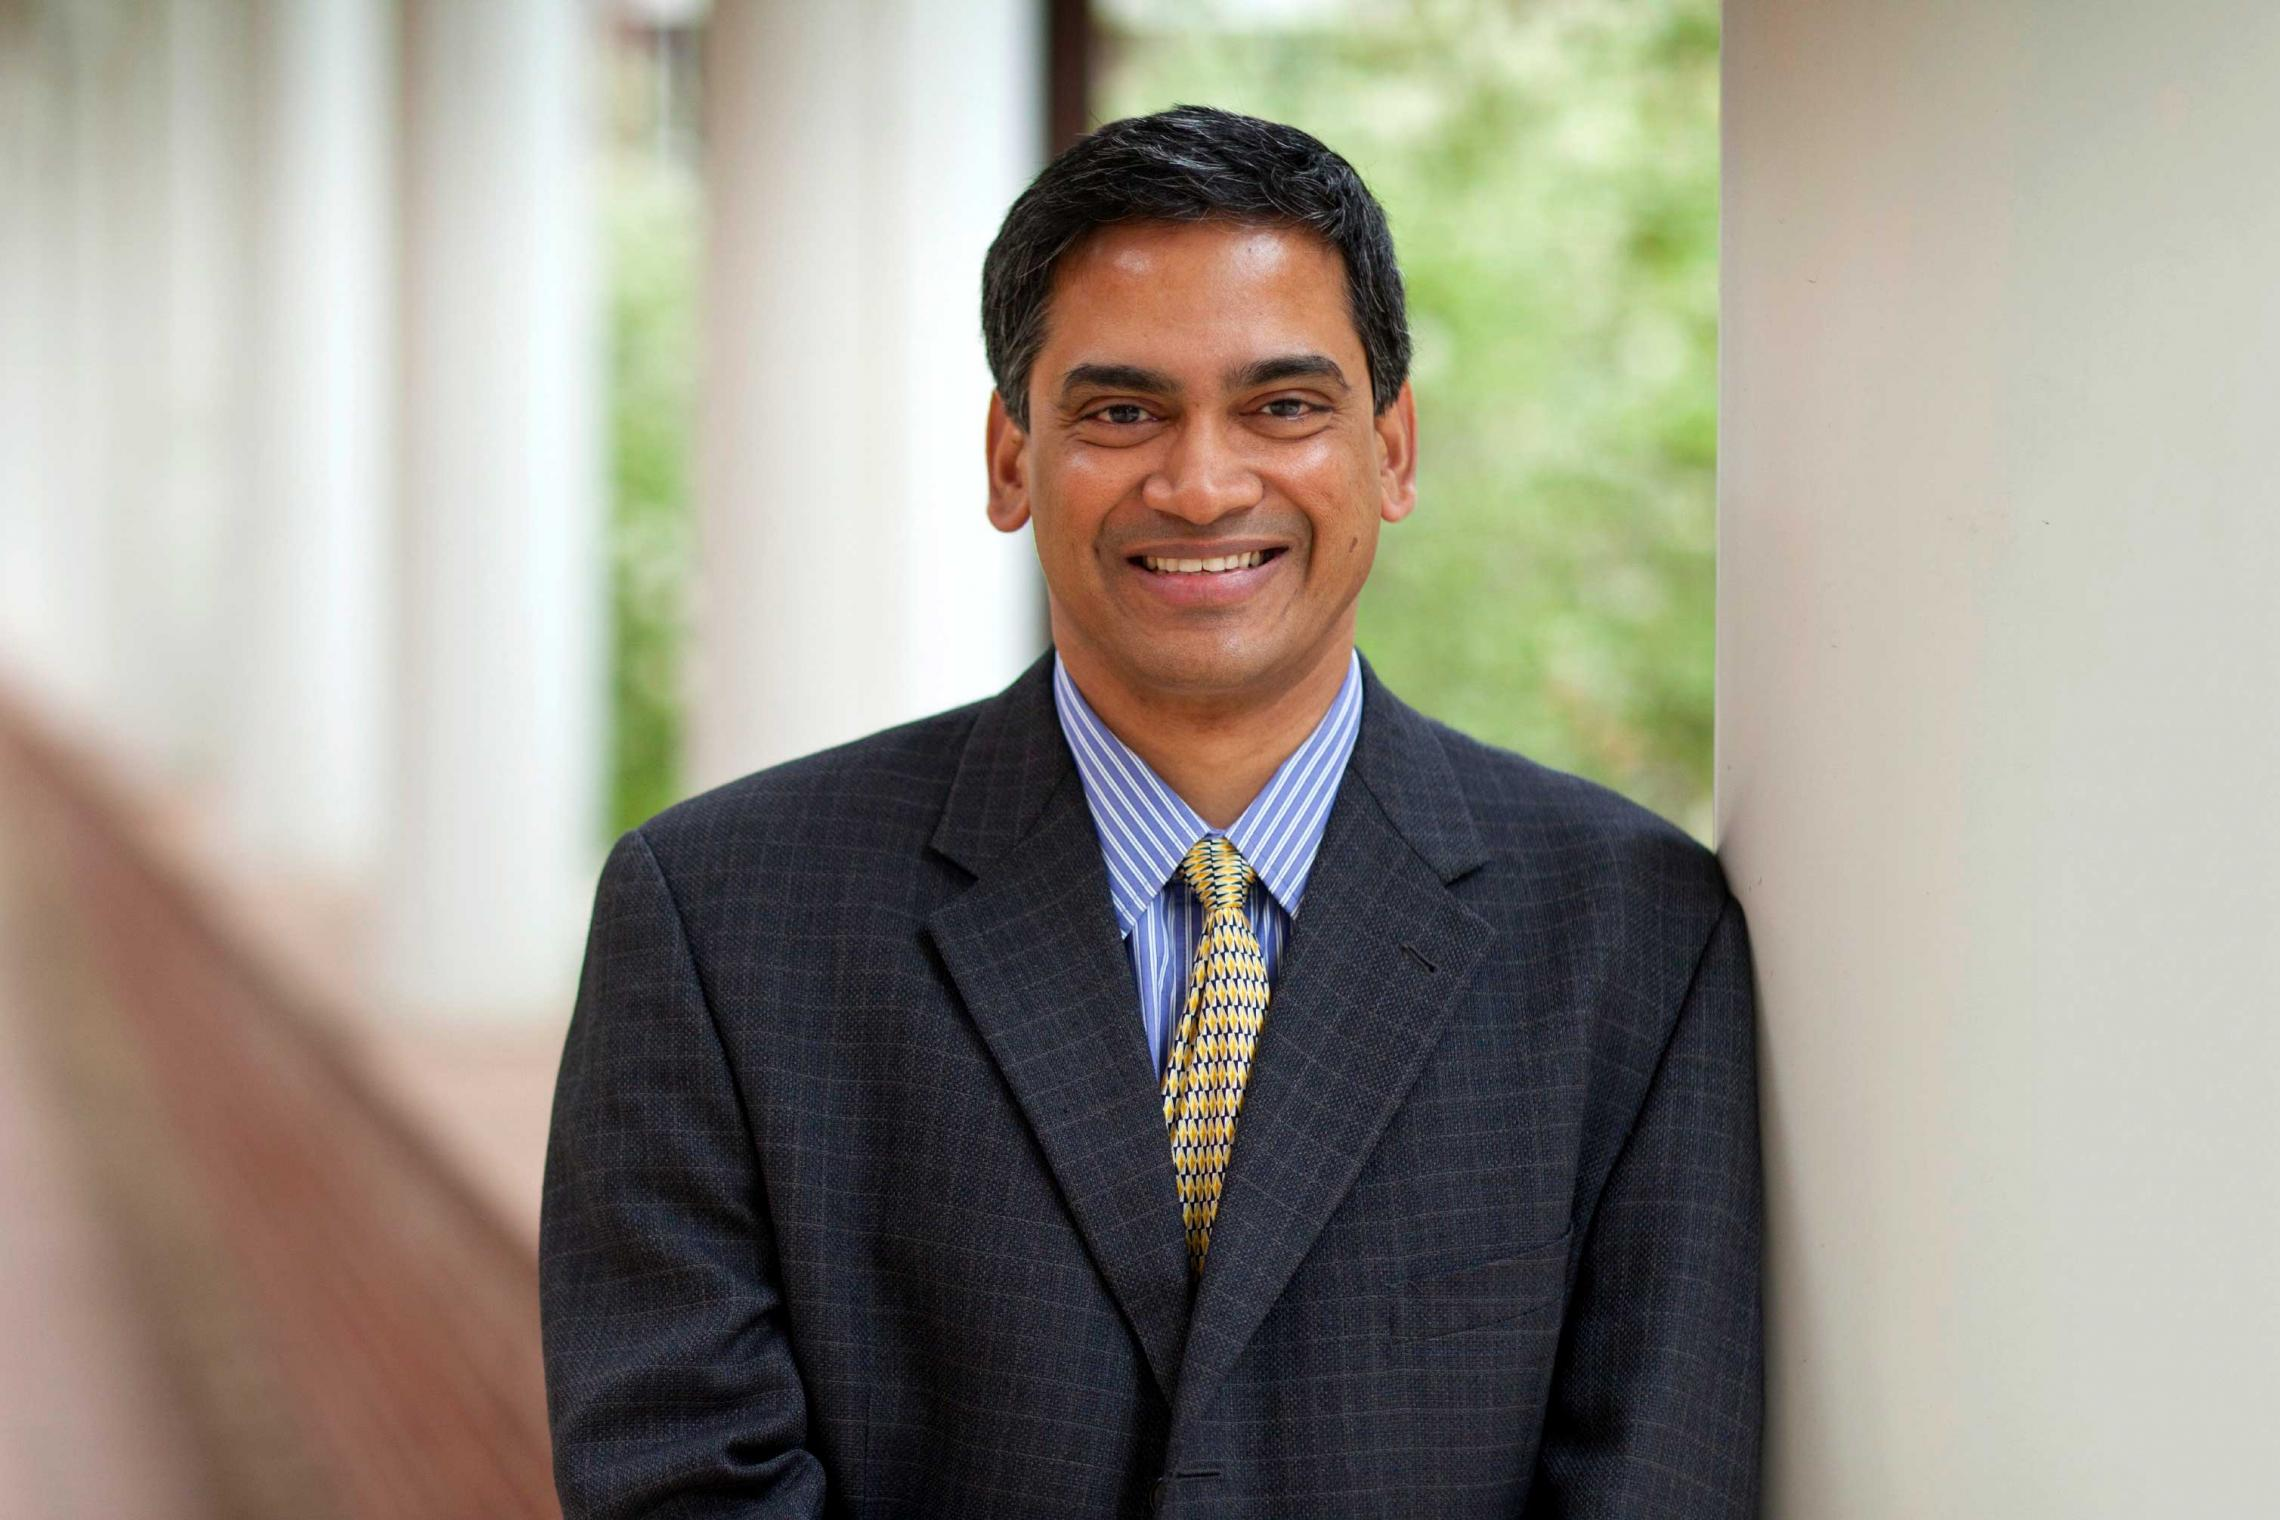 Kodi Ravichandran, a professor in UVA's Department of Microbiology since 1996, recently received an $8 million grant to extend and expand his research into Belgium.